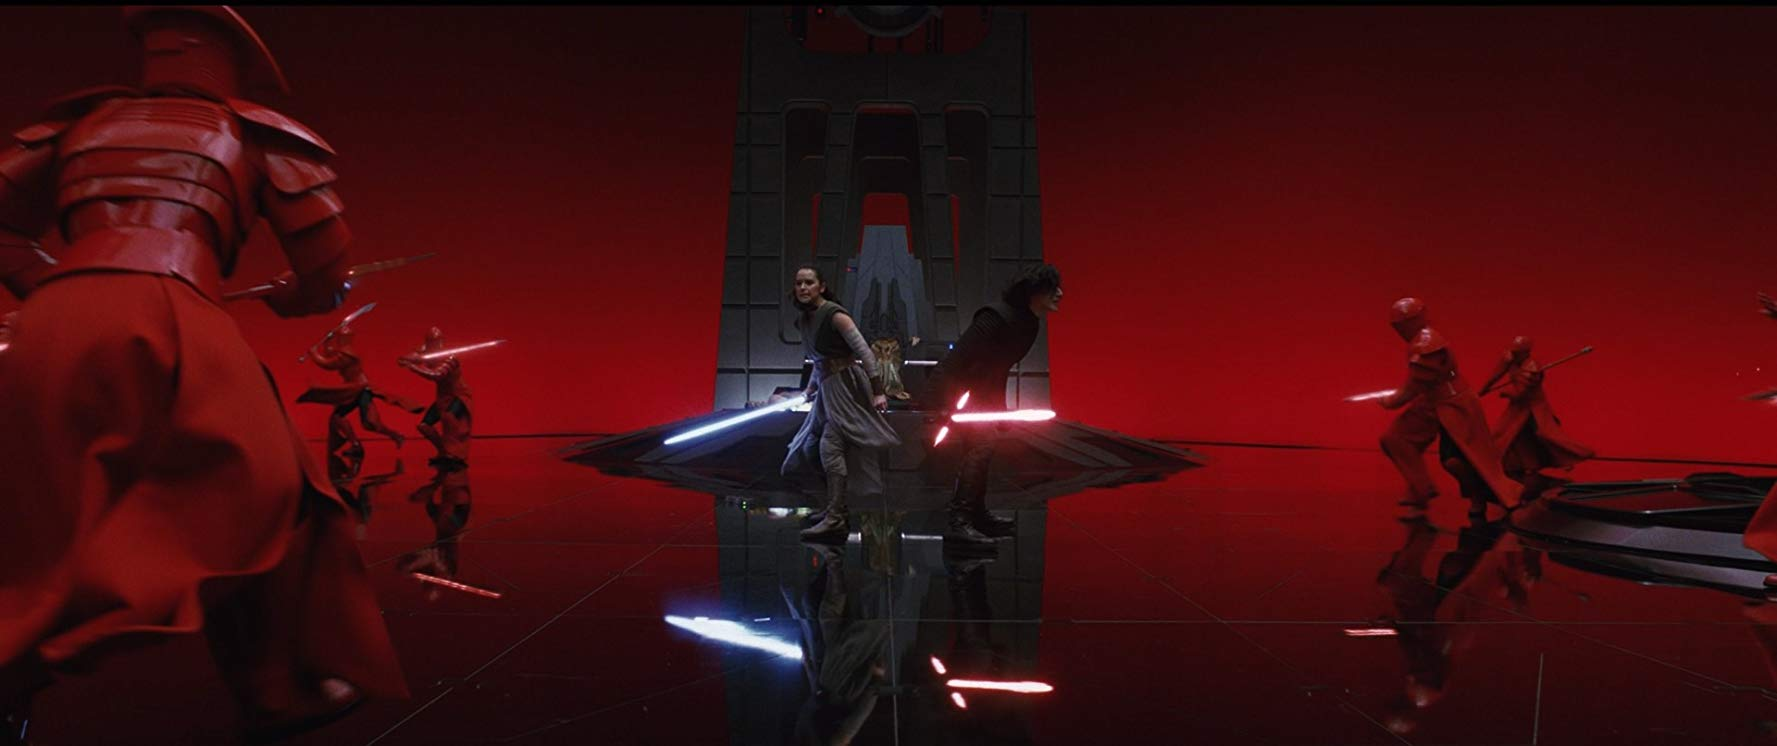 Daisy Ridley and Adam Driver (c) in the battle in Snokke's throne room in Star wars Episode VIII: The Last Jedi (2017)